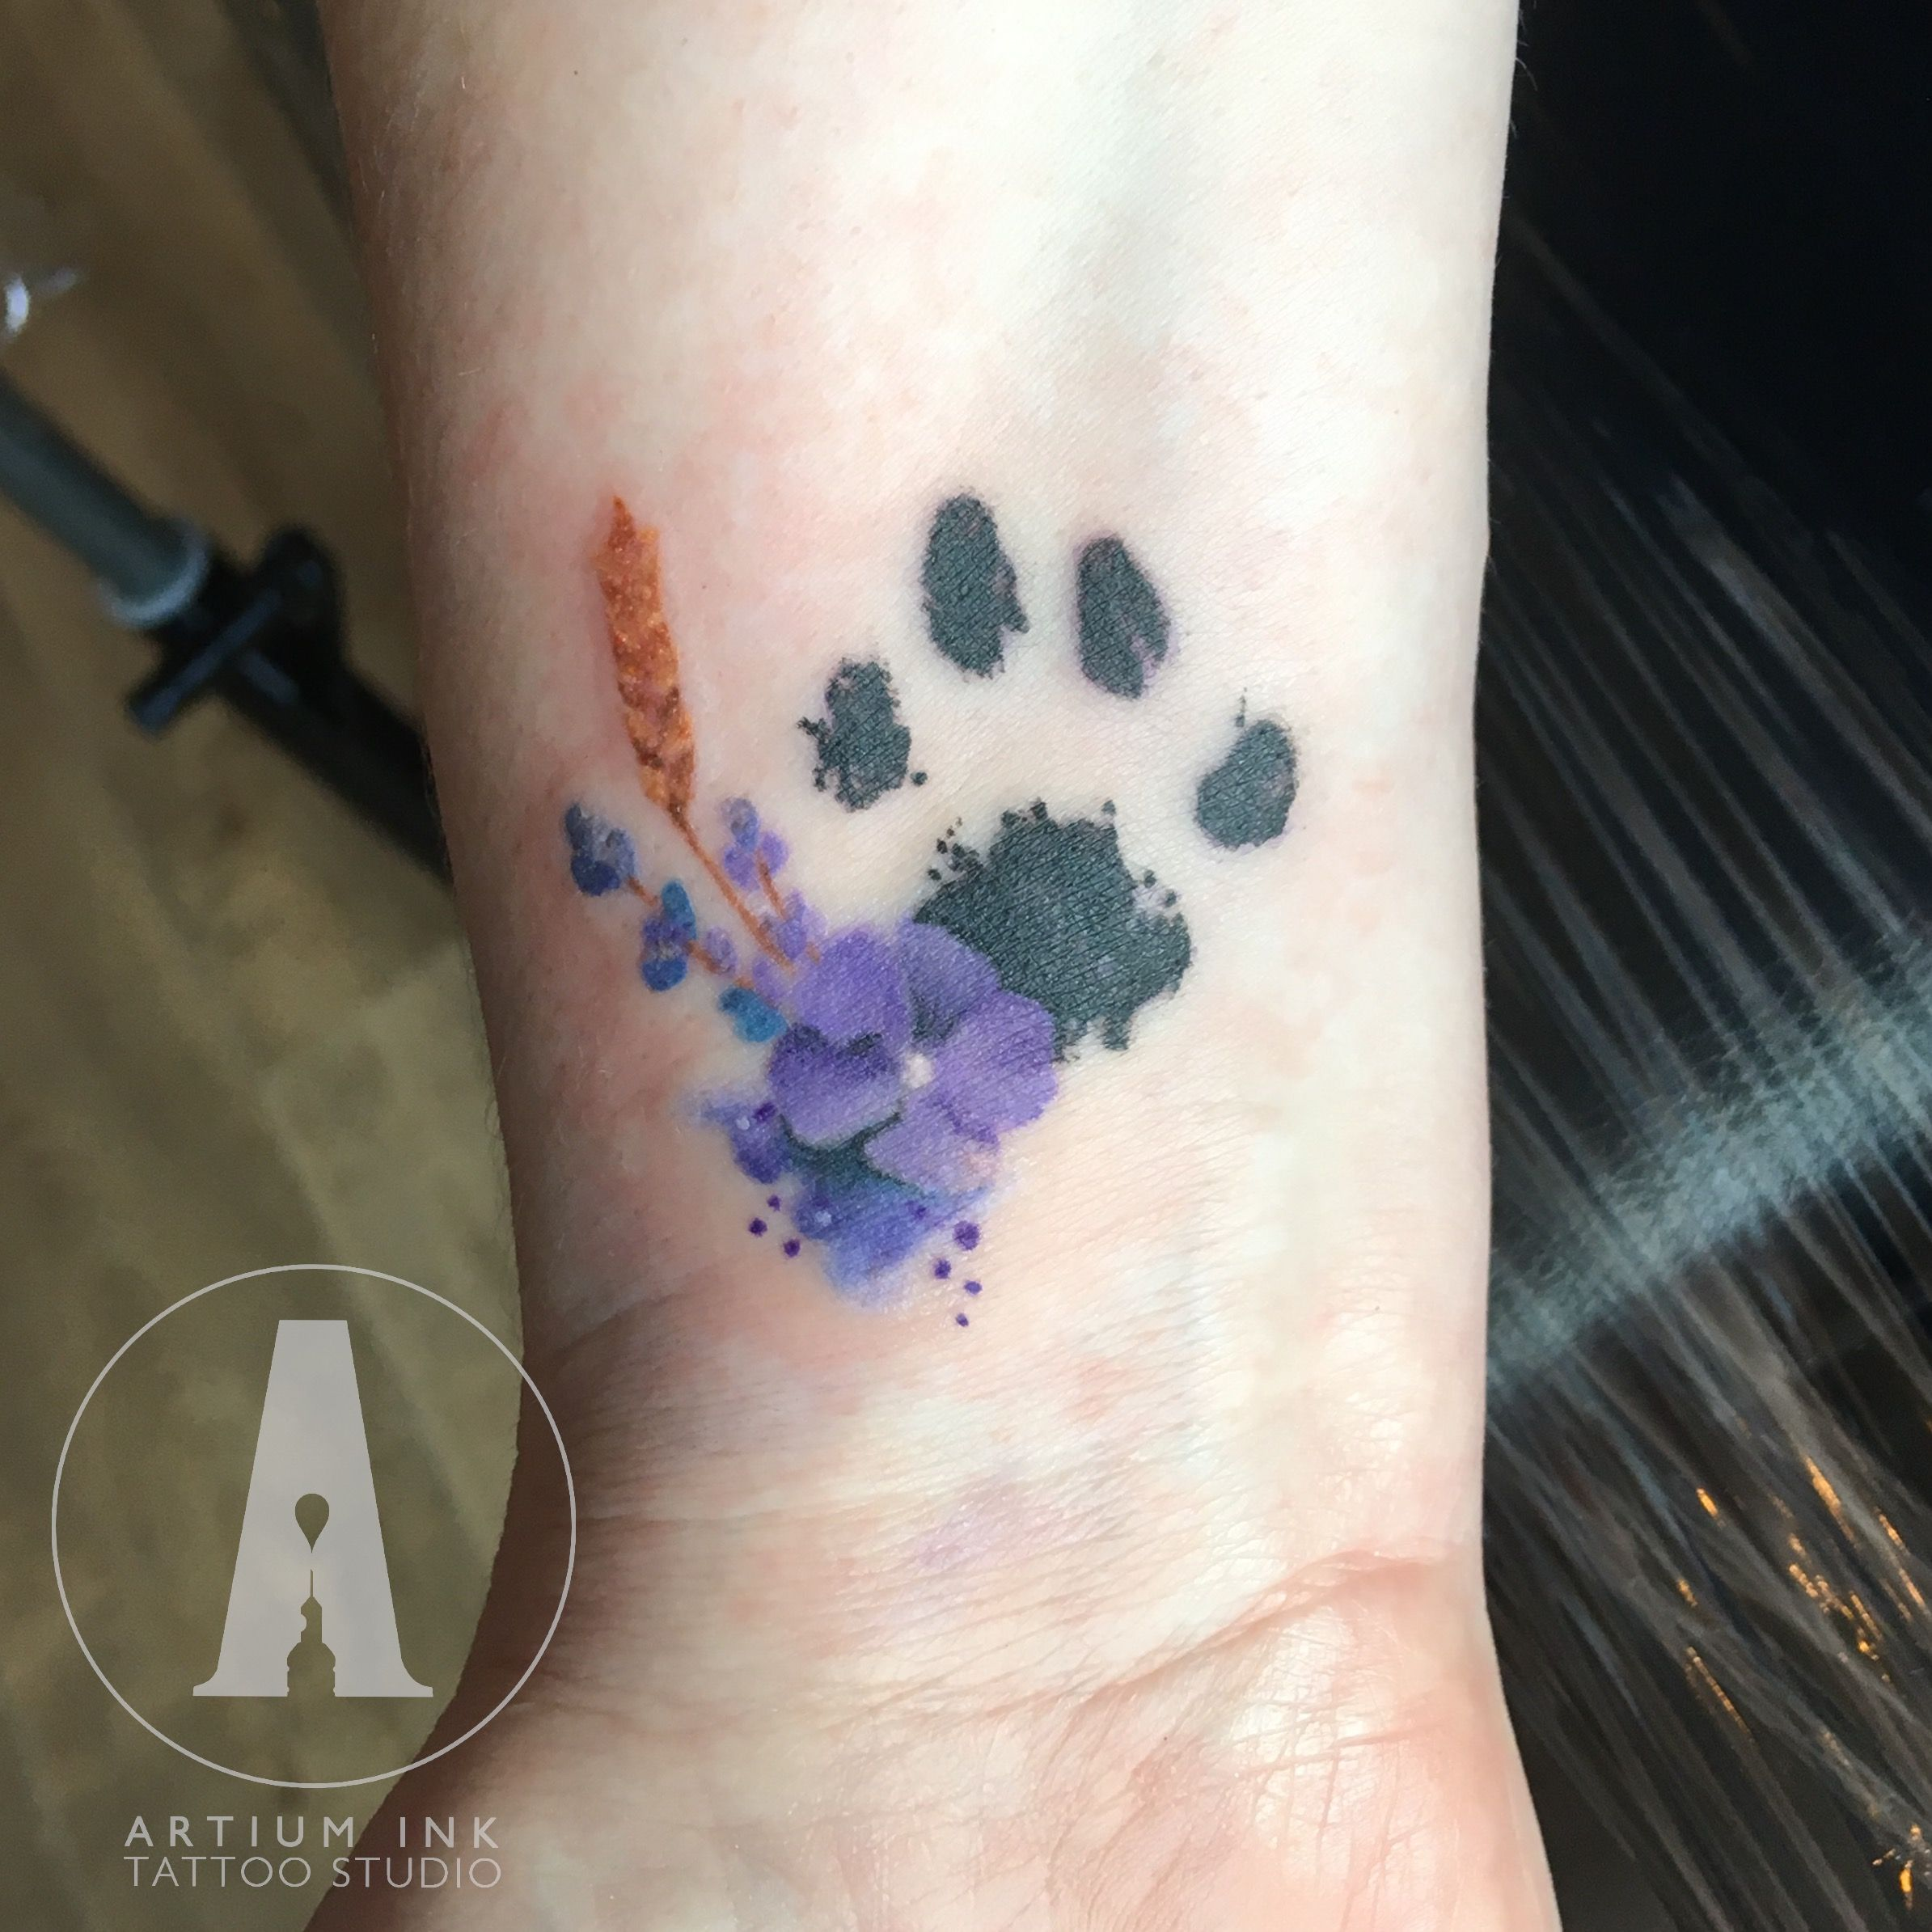 Paw Print Tattoos With Flowers: Delicate And Dainty Watercolour Paw Print And Wildflower